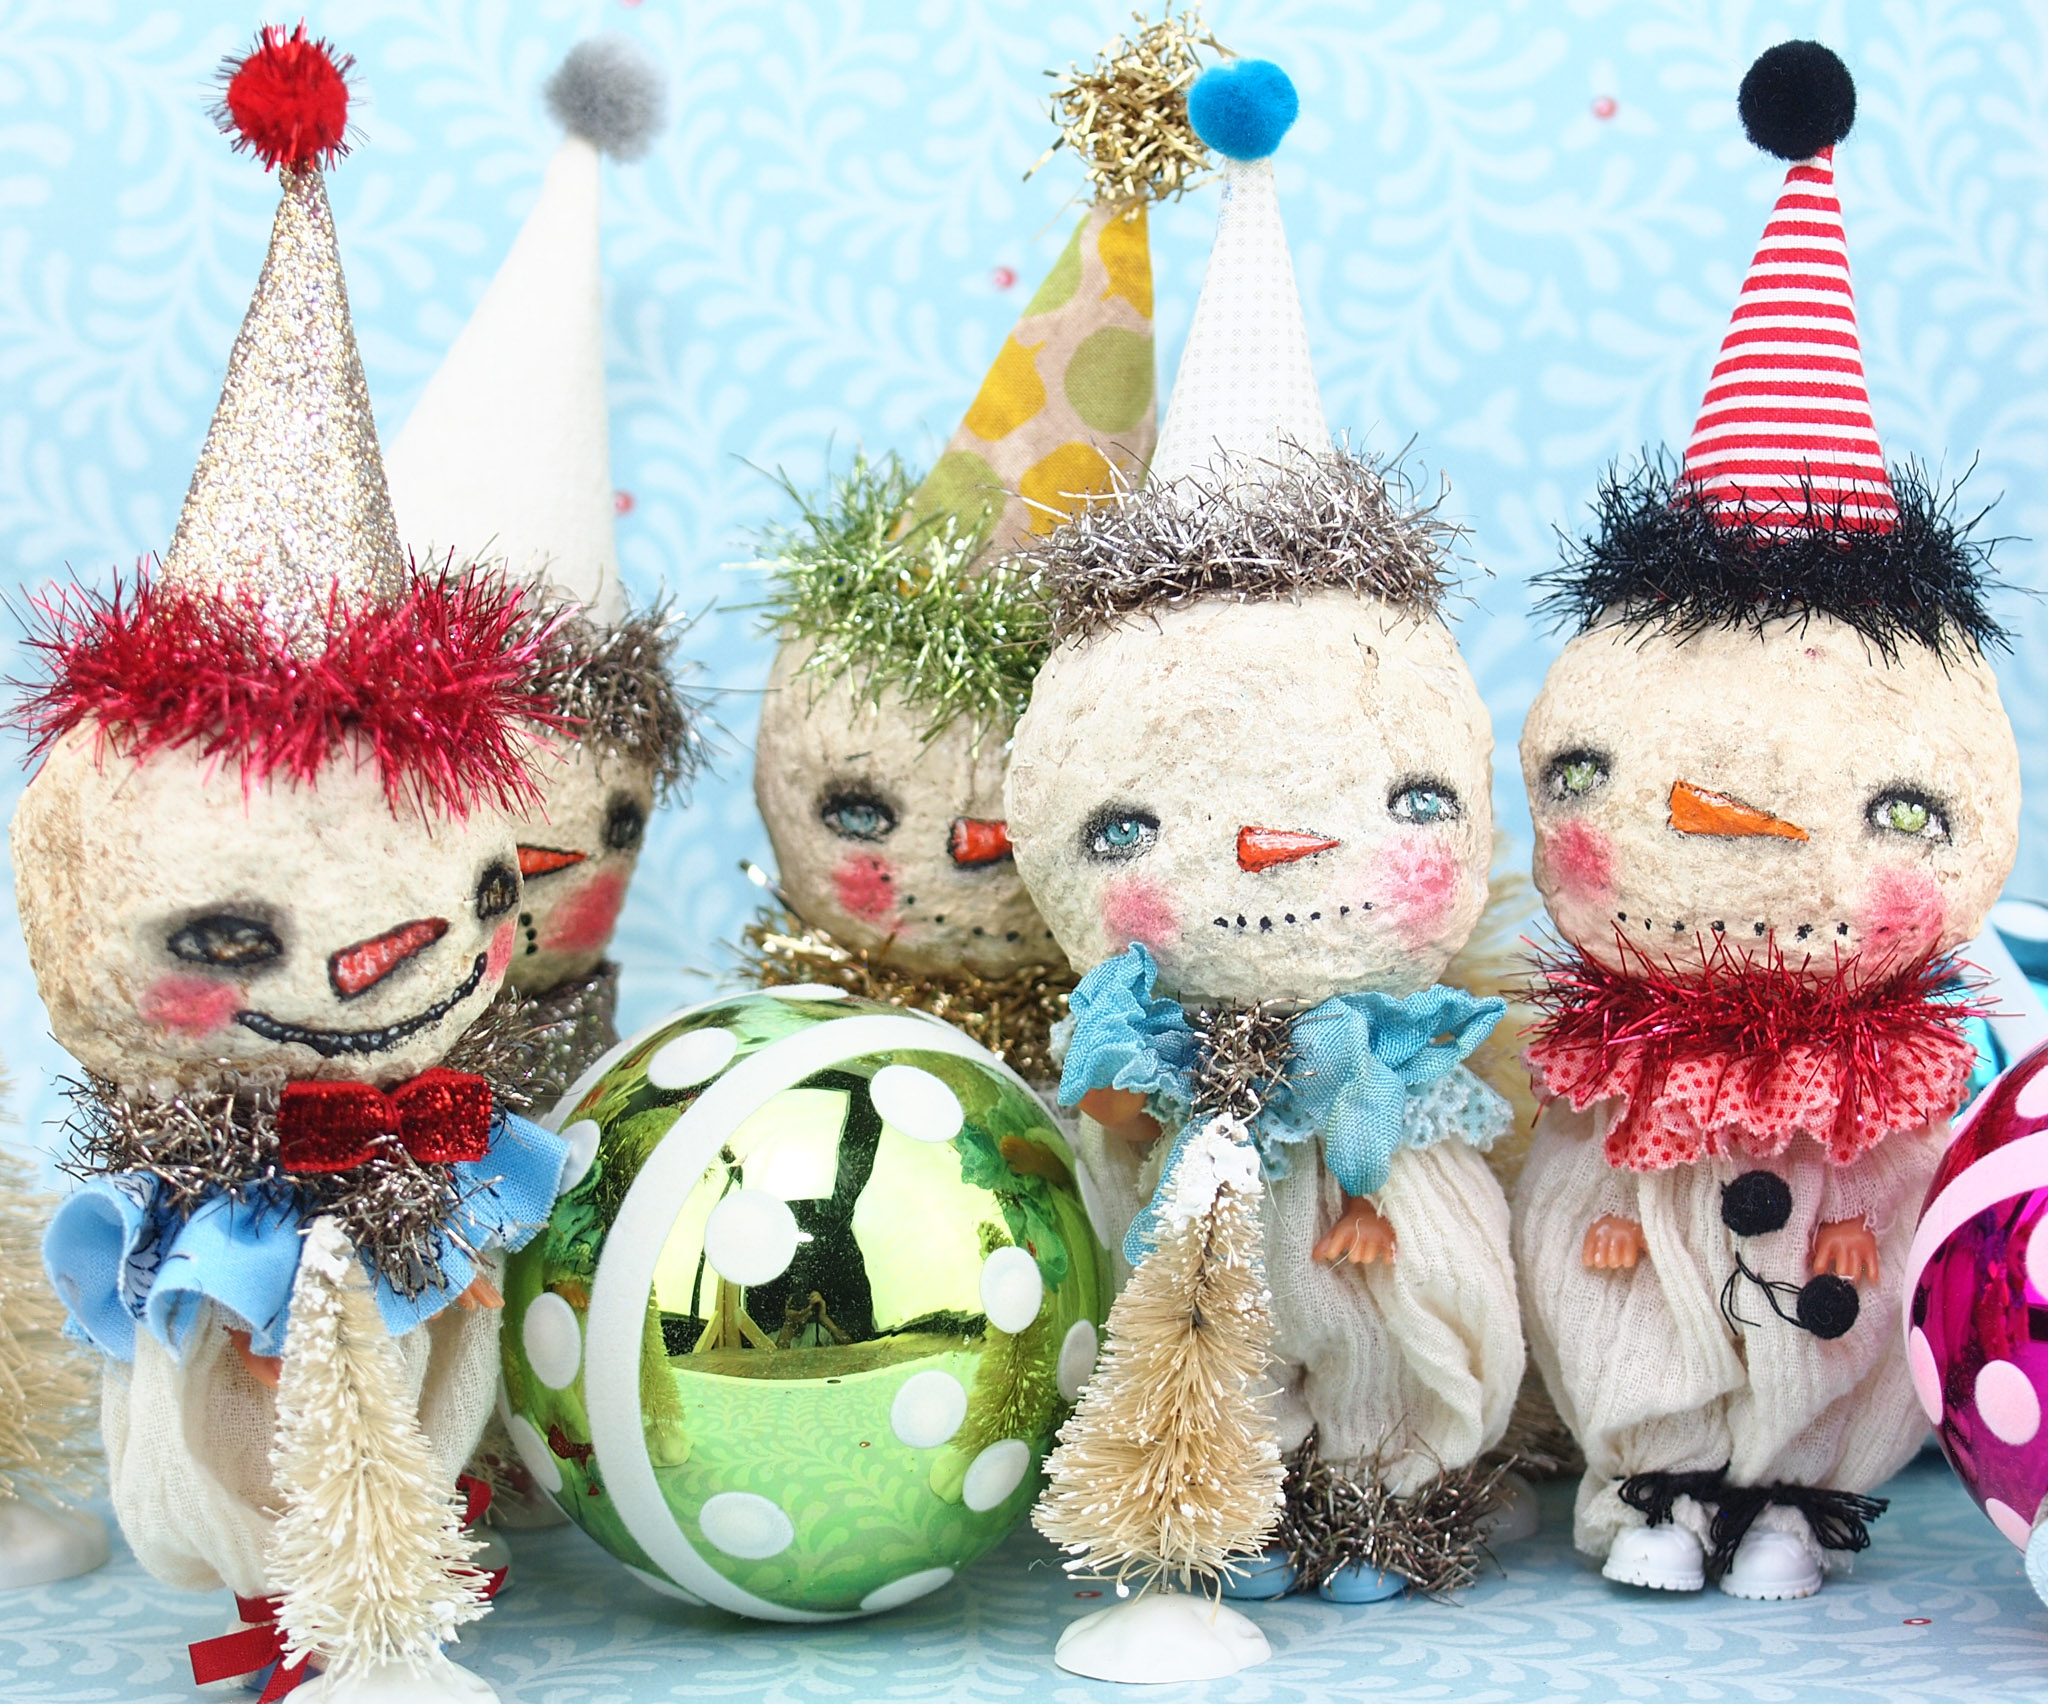 Beautiful handmade art dolls created by the talented hands of mixed media artist, Danita Art